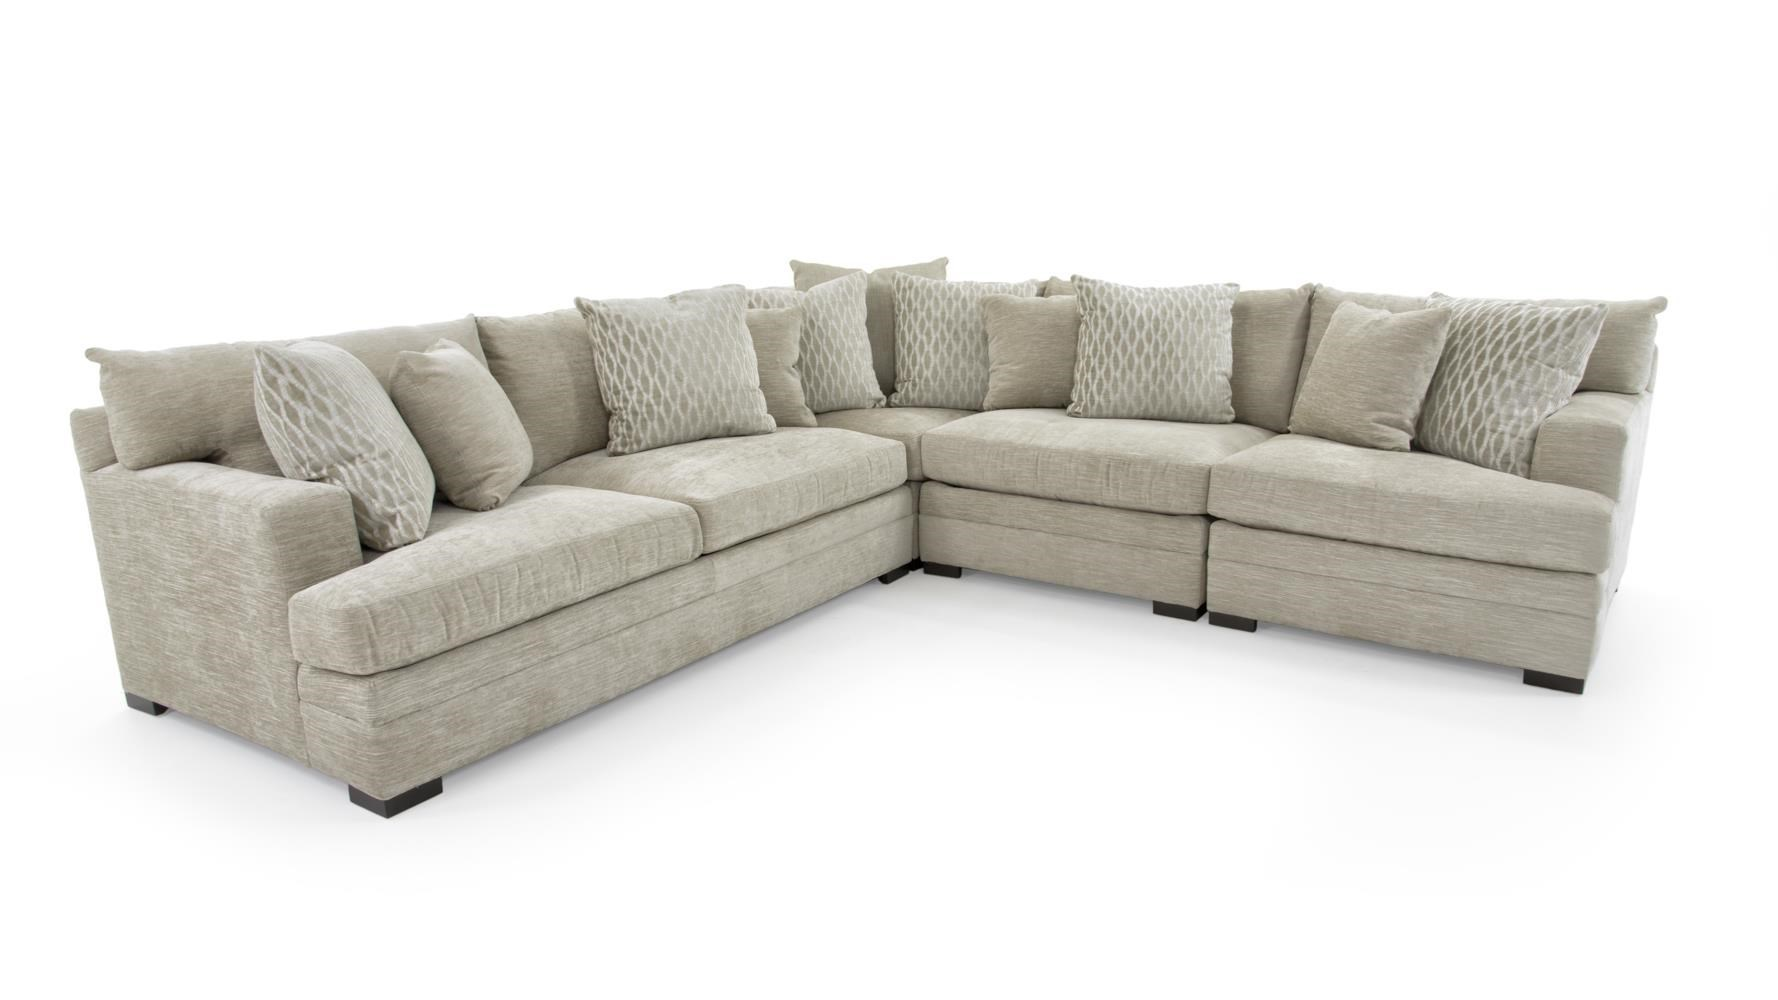 Exceptional Huntington House 71004 Pc Sectional Sofa ...